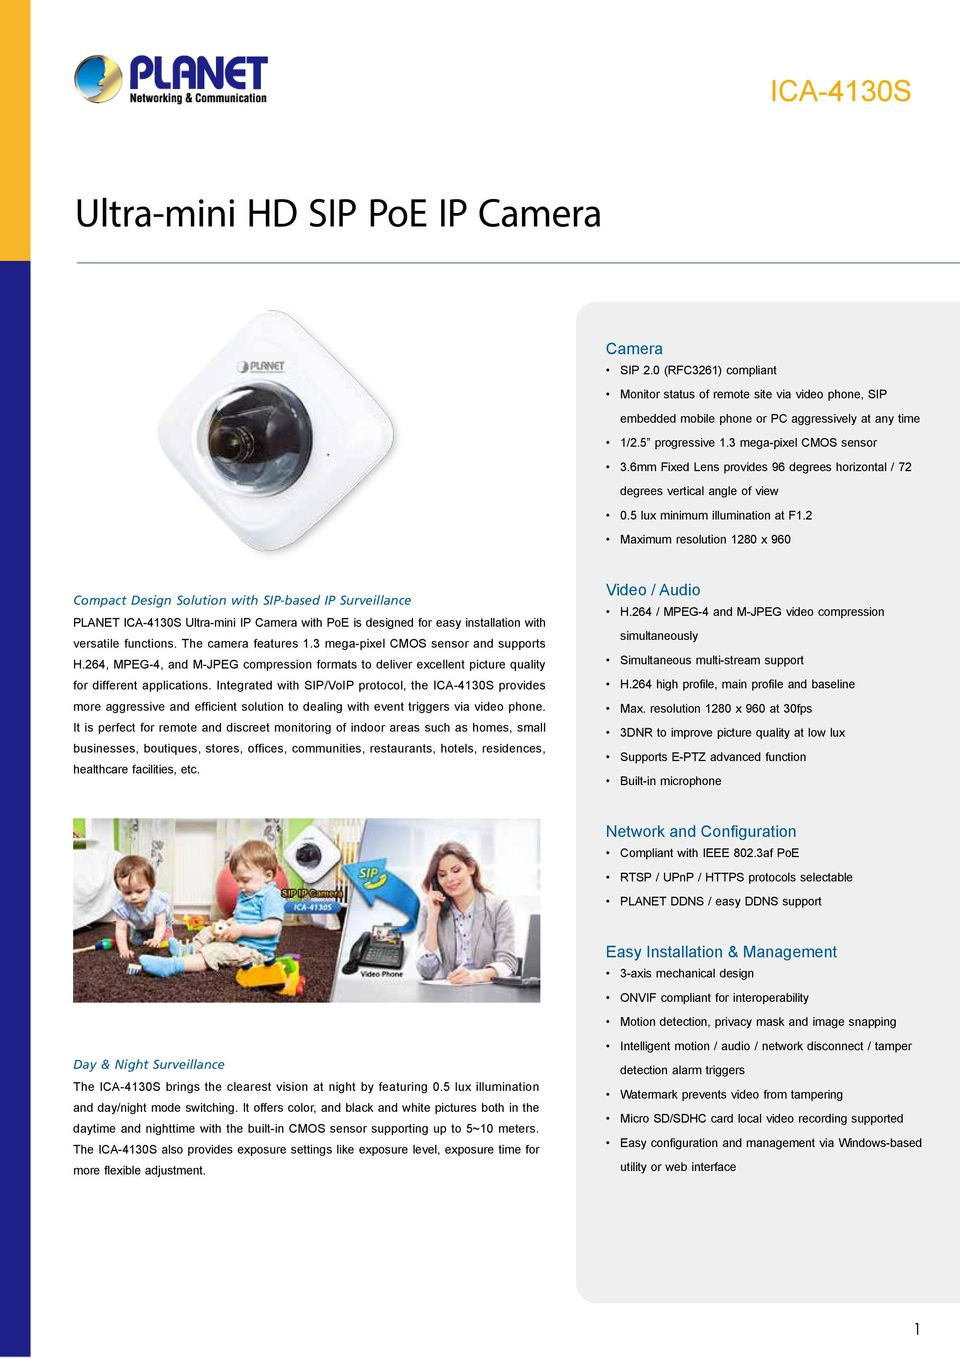 2 Maximum resolution 1280 x 960 Compact Design Solution with SIP-based IP Surveillance PLANET Ultra-mini IP Camera with is designed for easy installation with versatile functions.